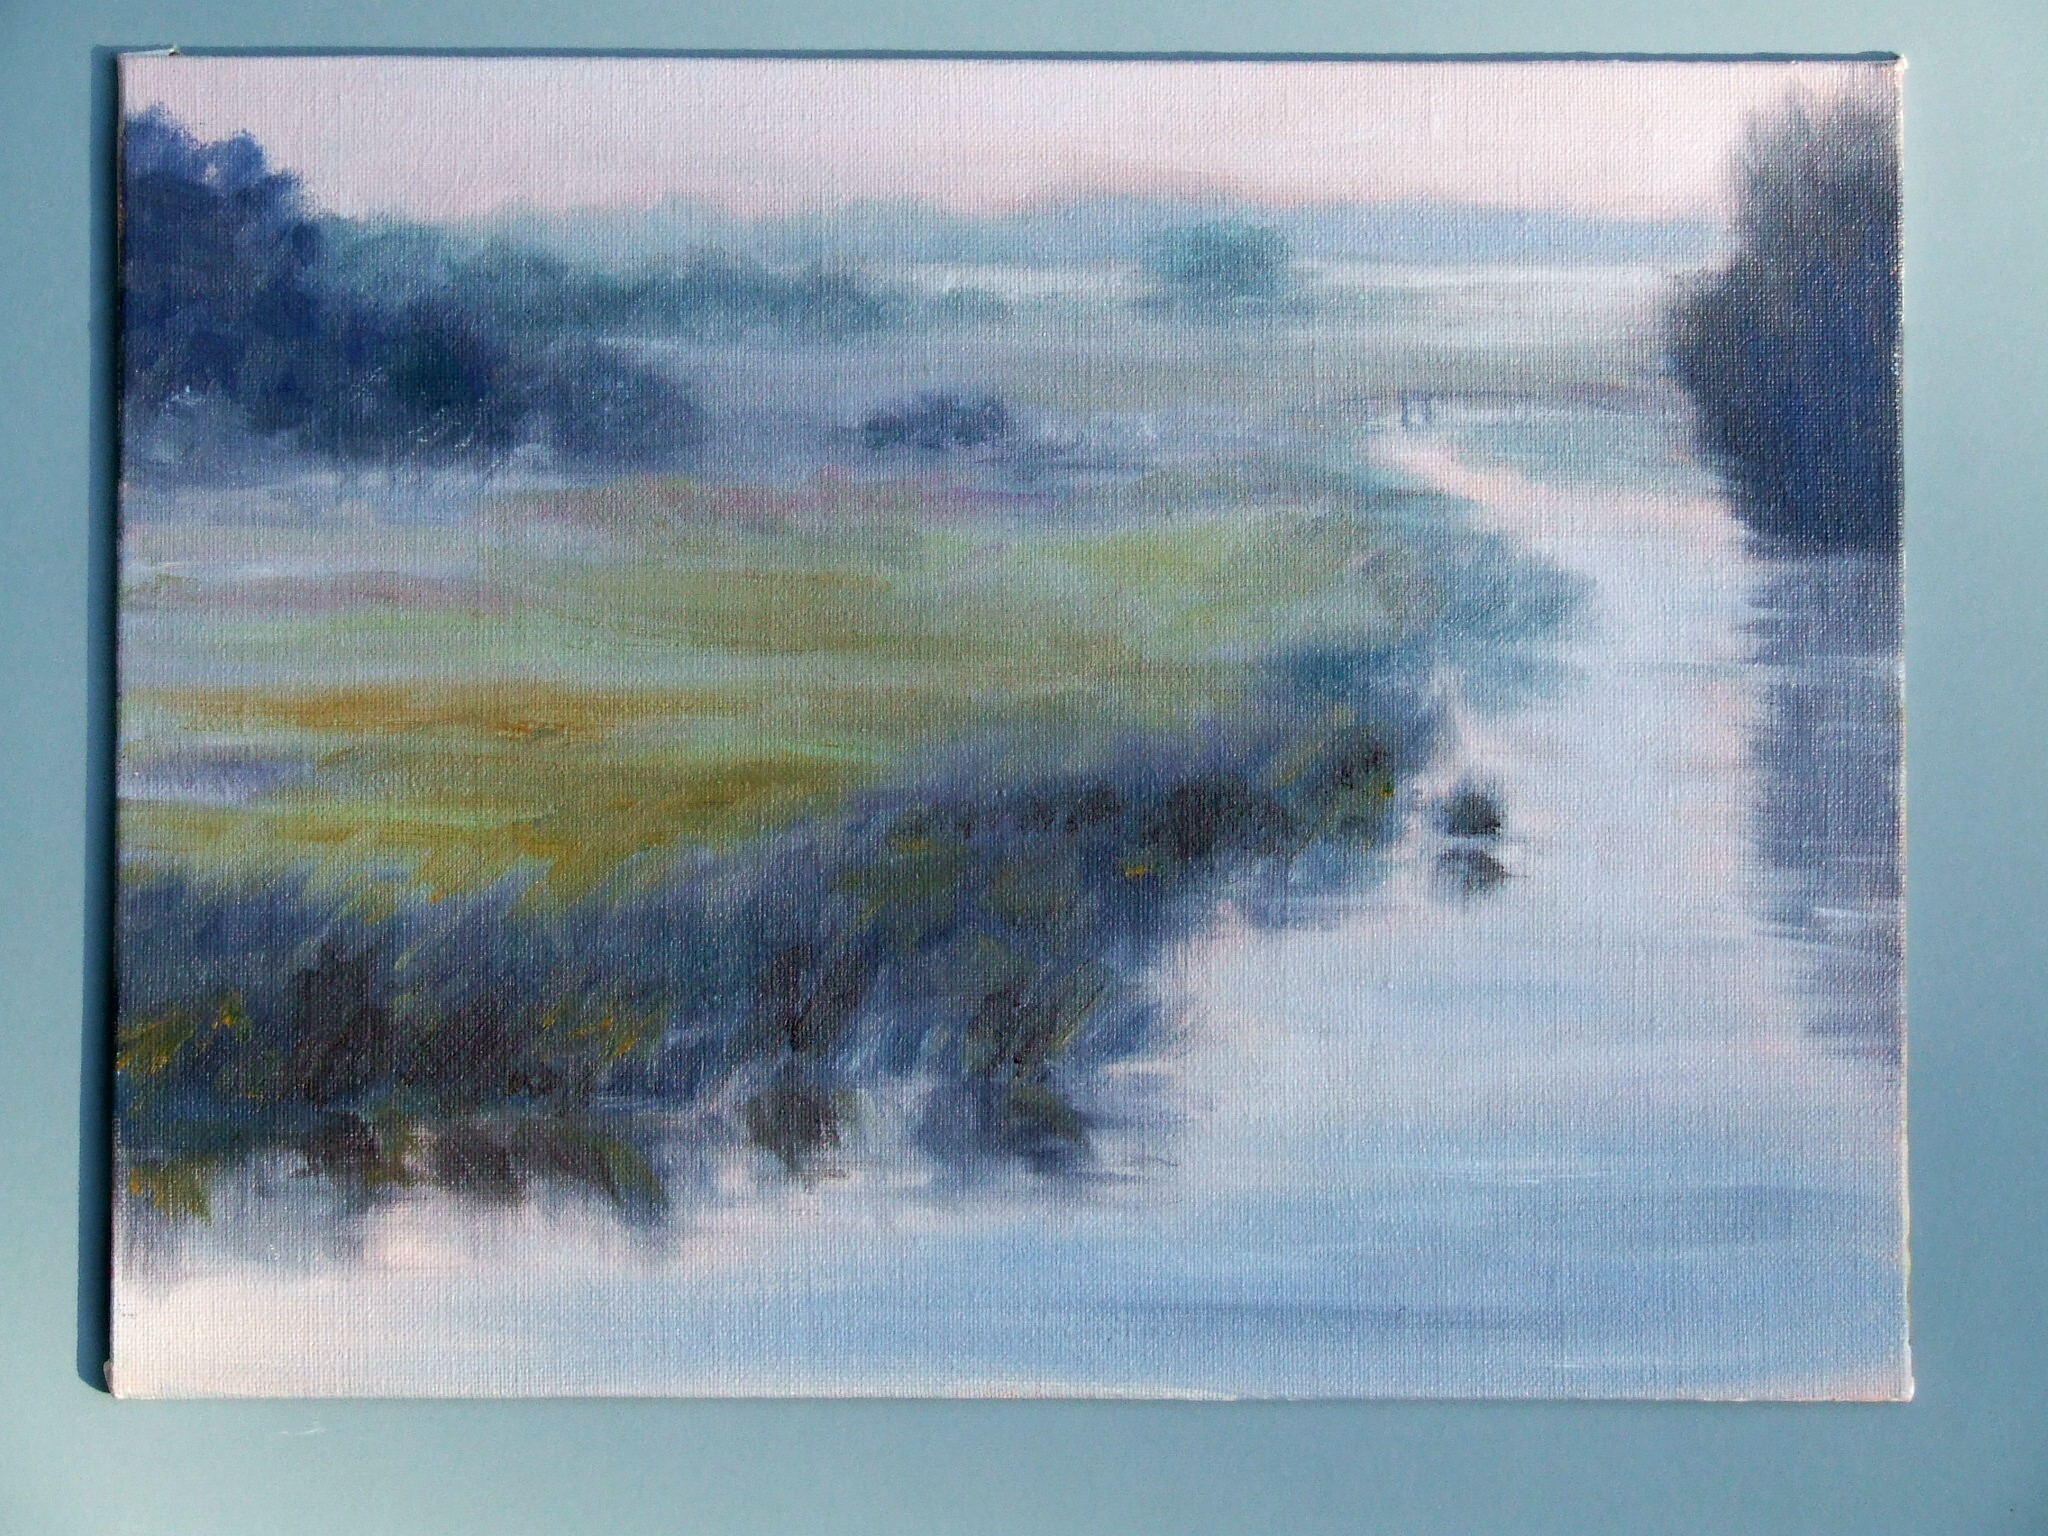 misty-morning-sapelo-marsh